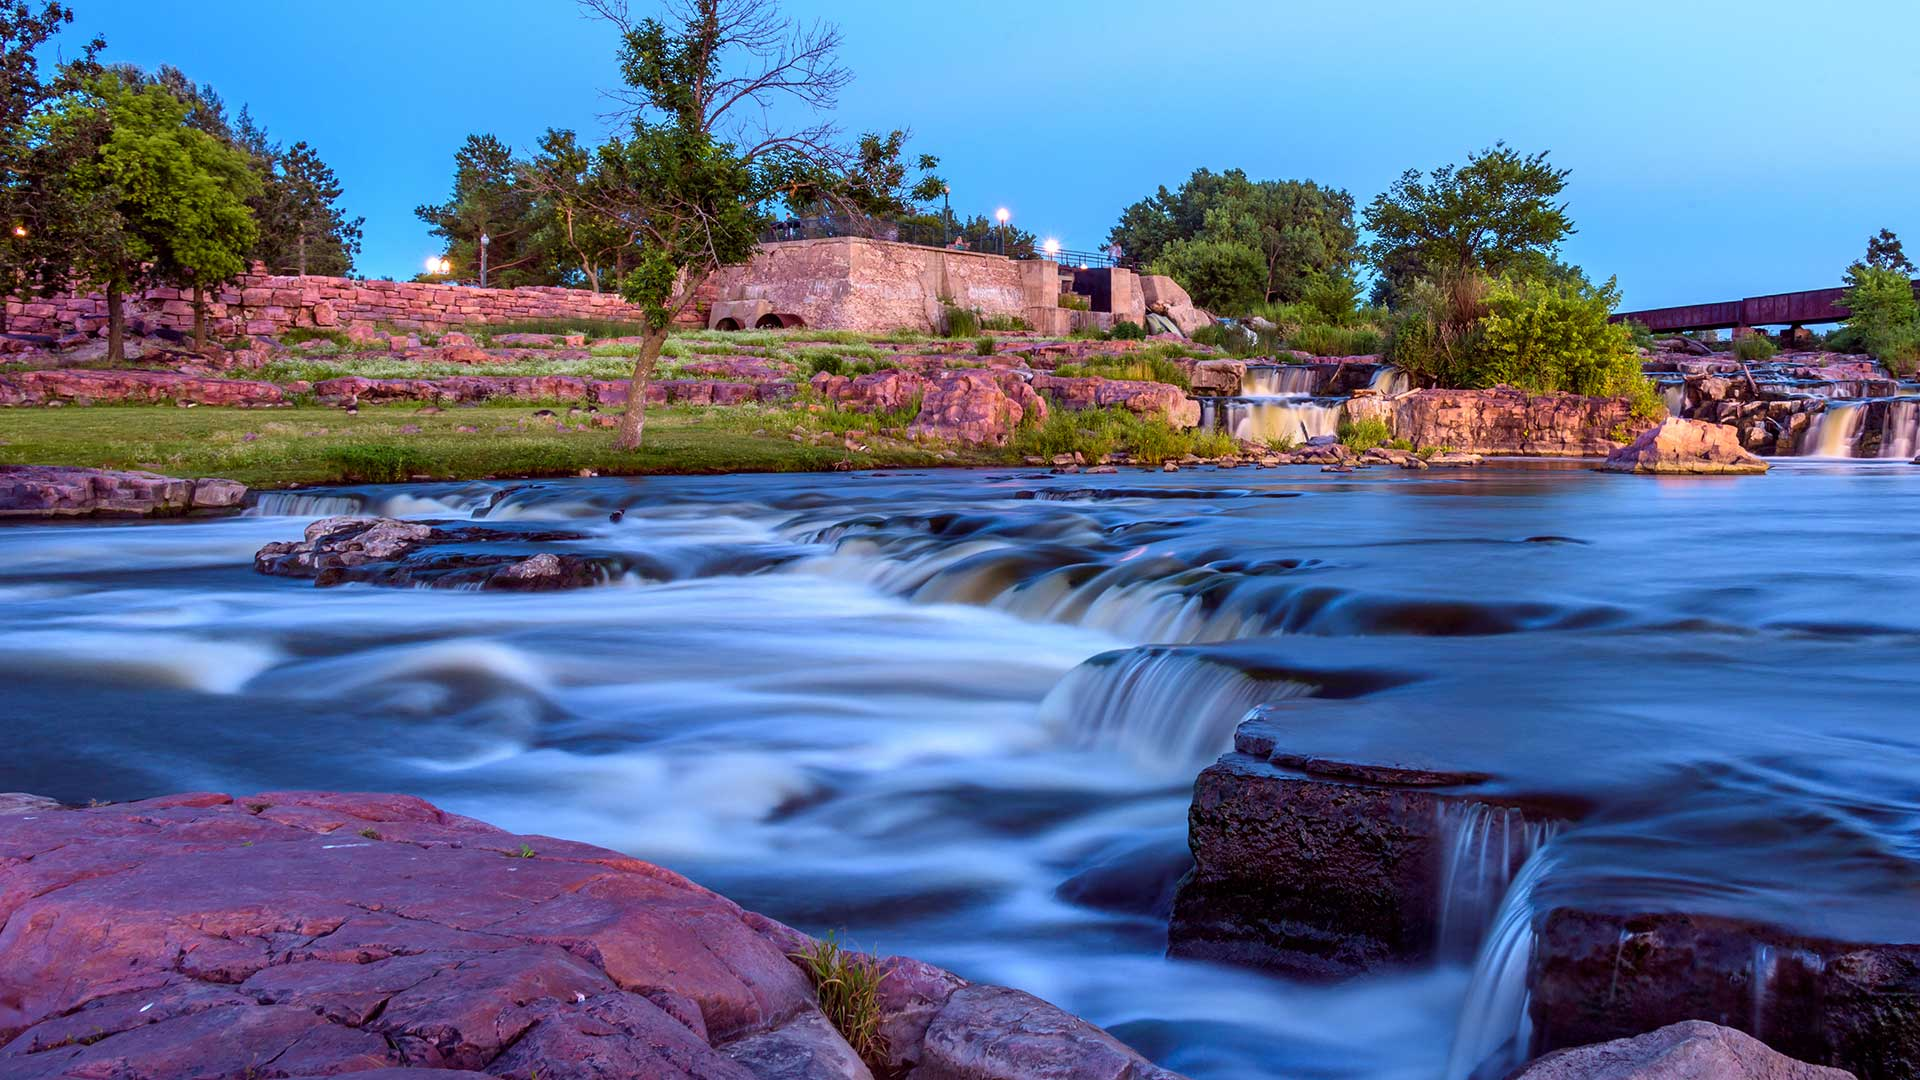 Panorama to illustrate dating in sioux falls